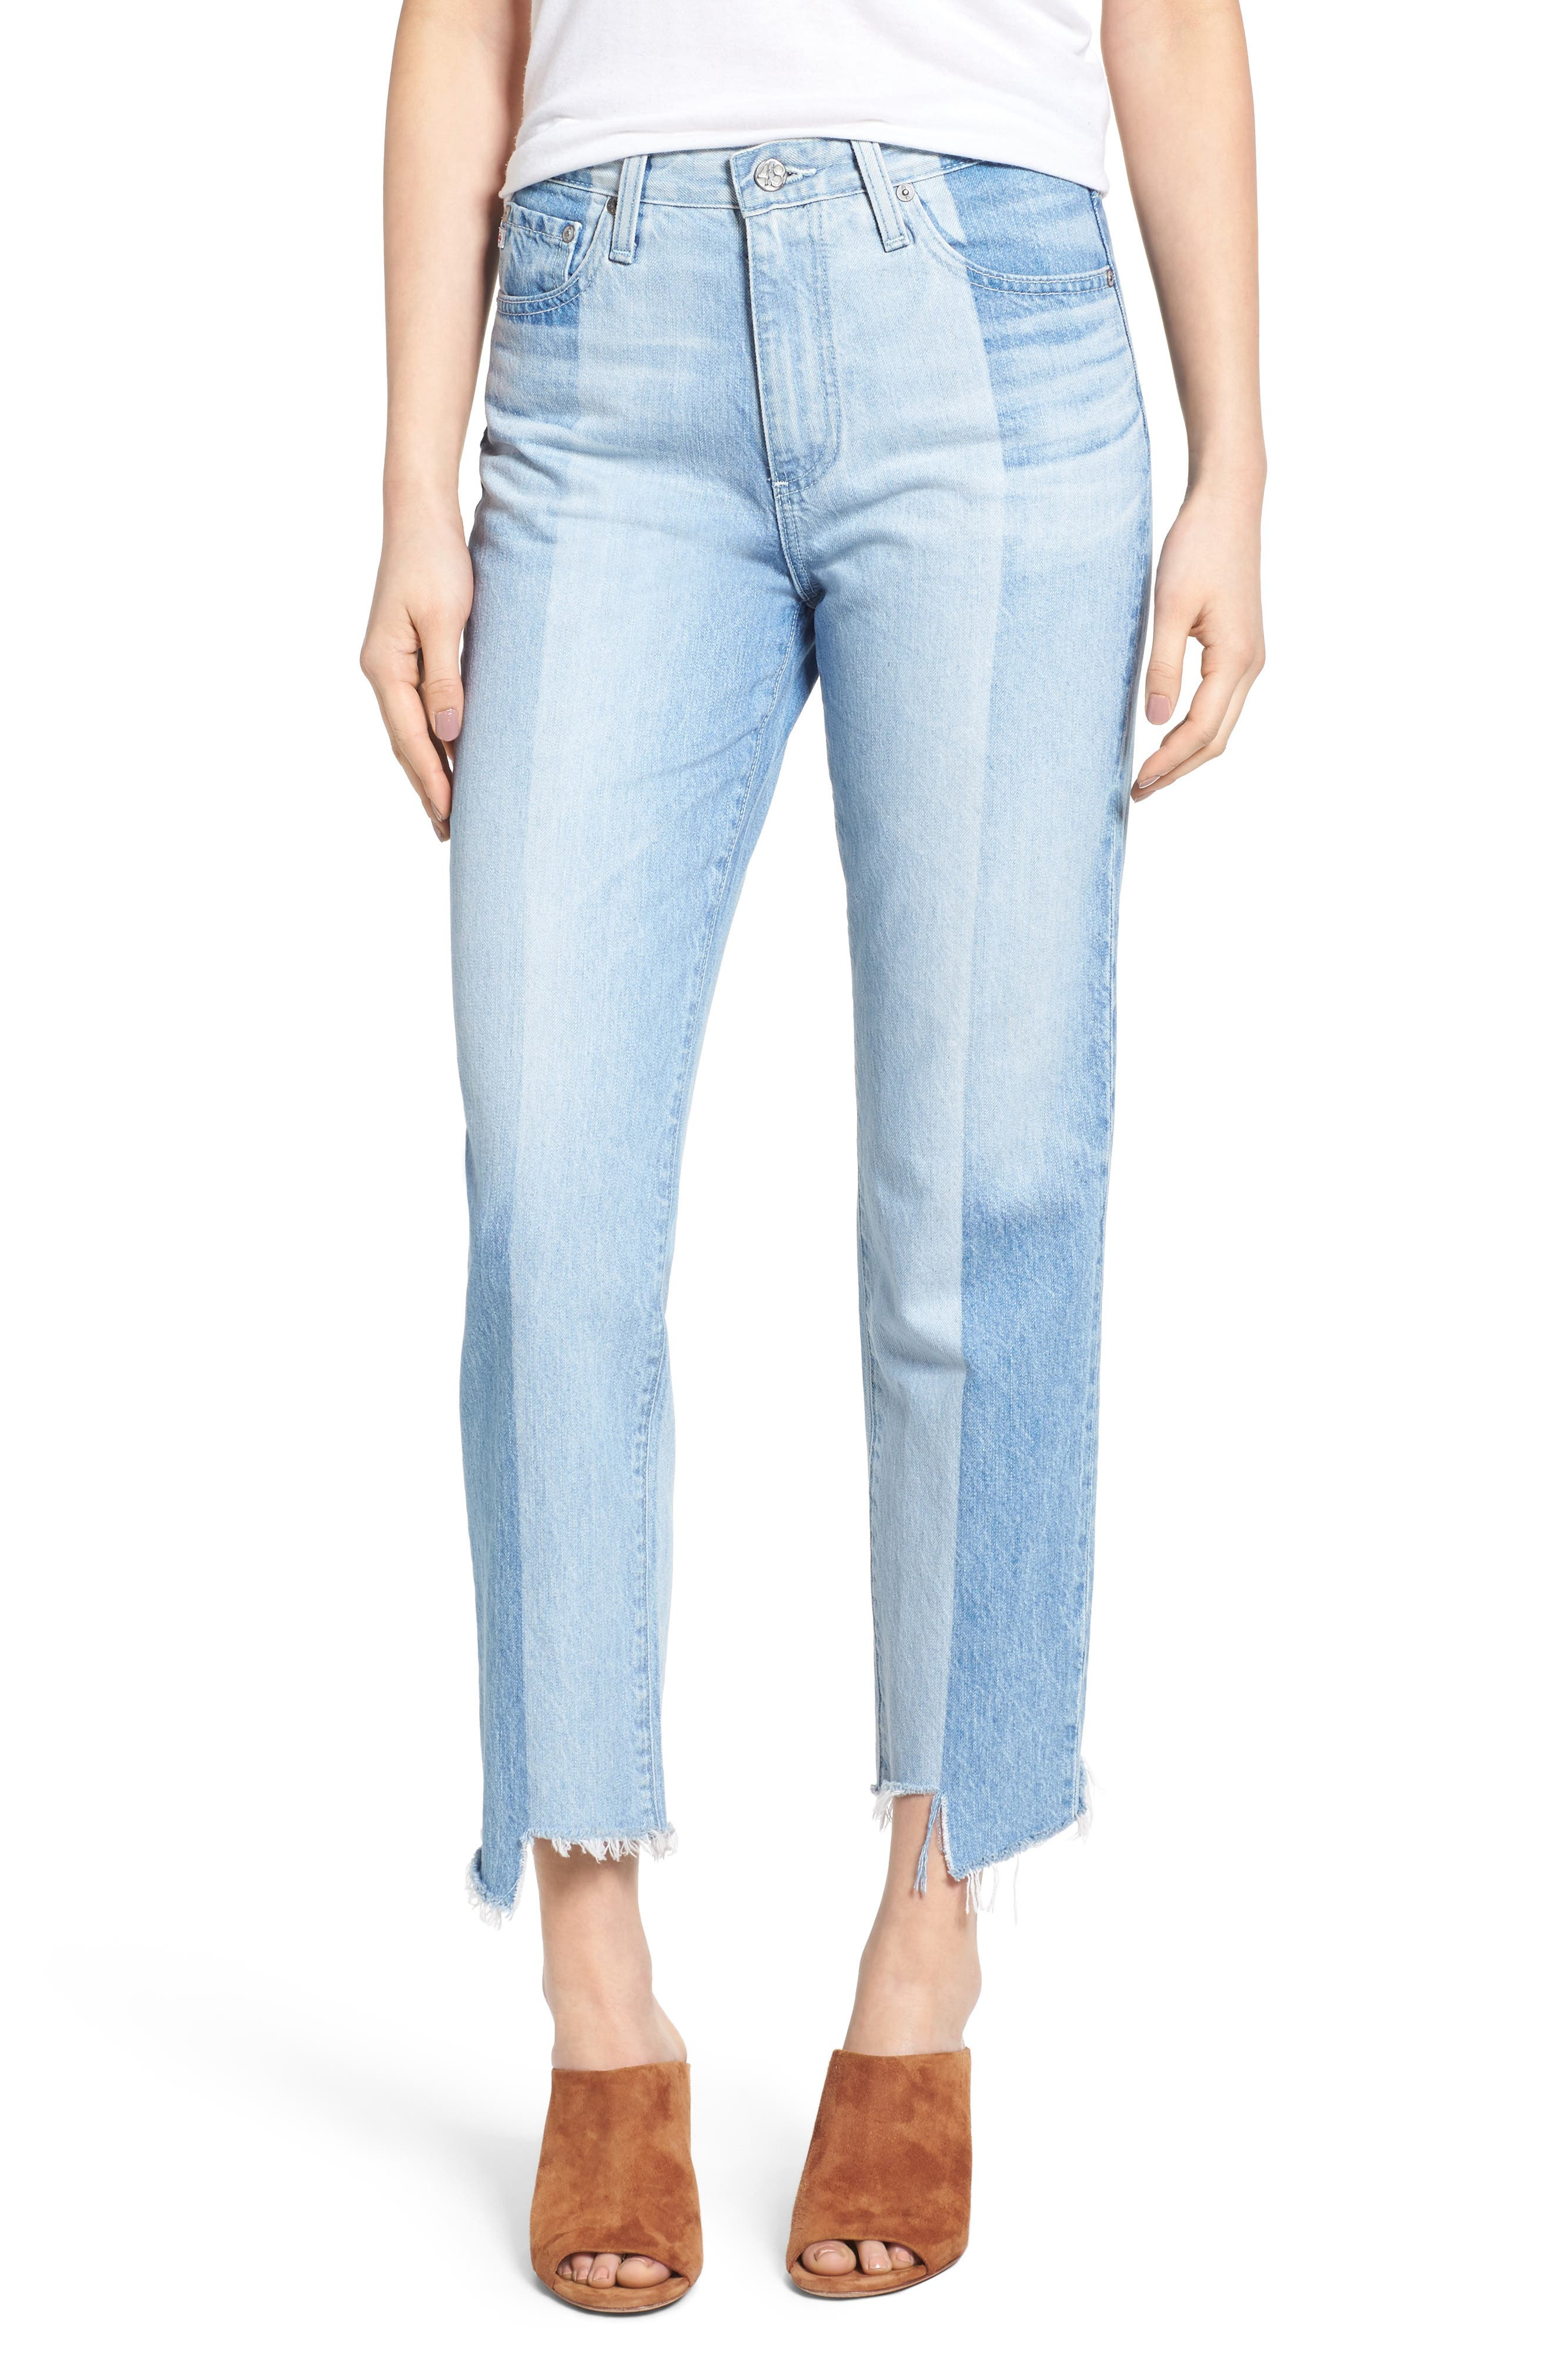 The Phoebe Vintage High Waist Straight Leg Jeans